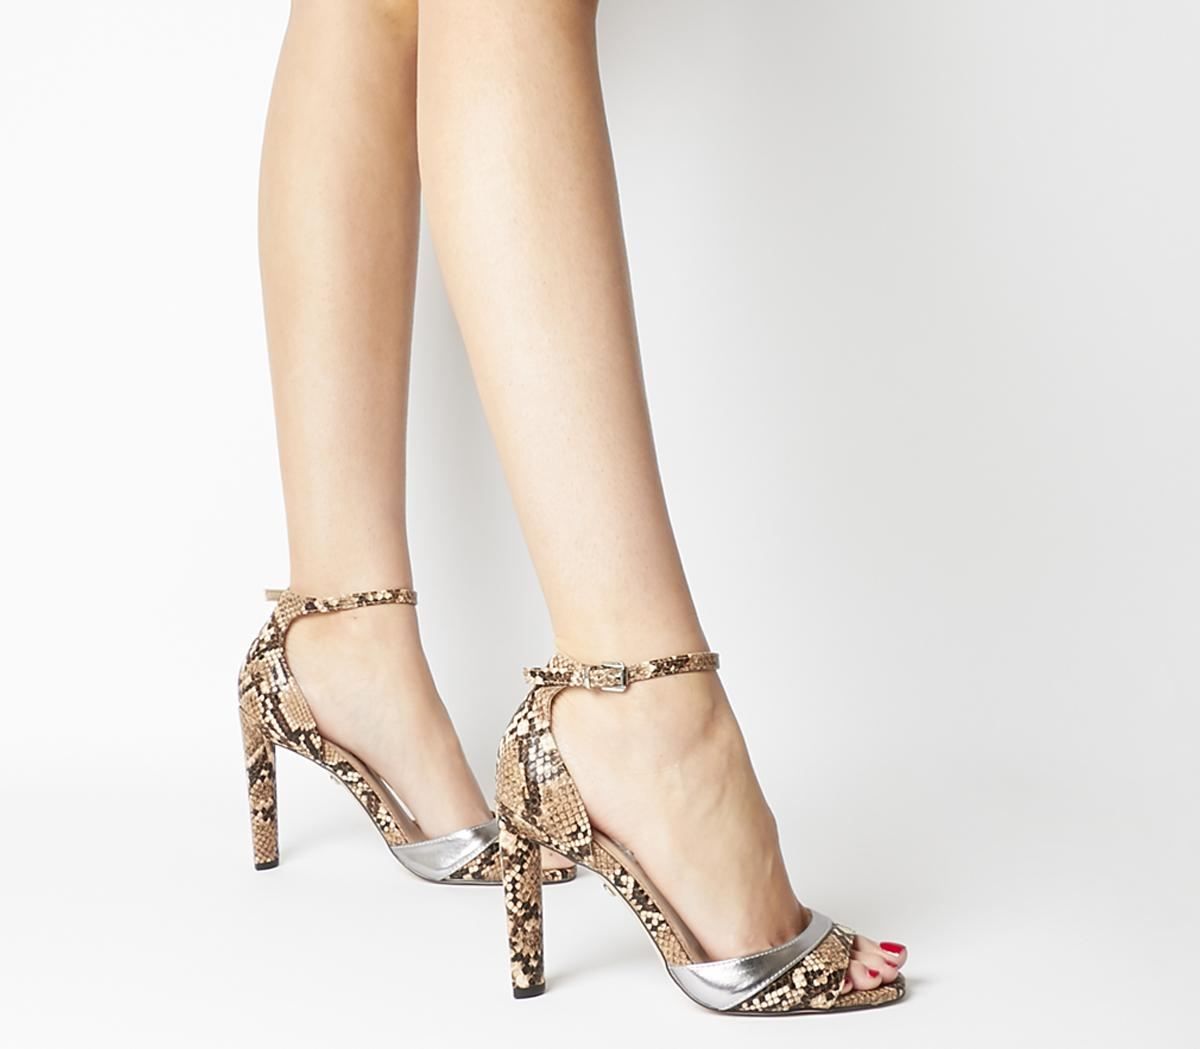 Womens Office Hila Wf Ankle Strap Sandal Natural Snake